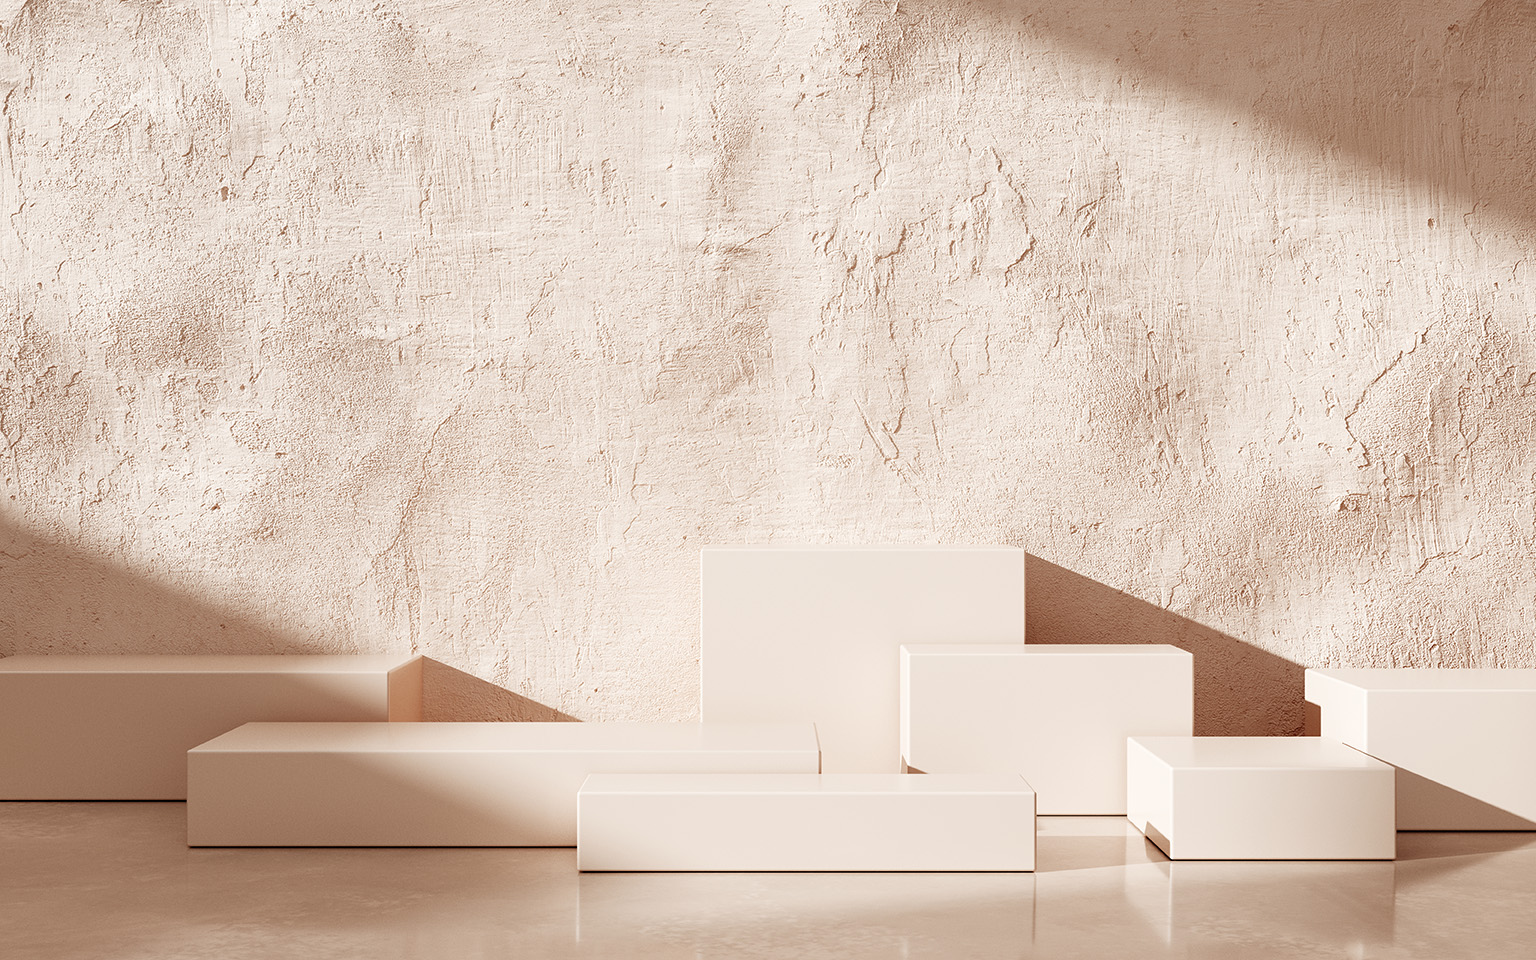 HQ hero image for polyte gallery, red/pink stane room with cubes and sunlight falling in as if ray traced